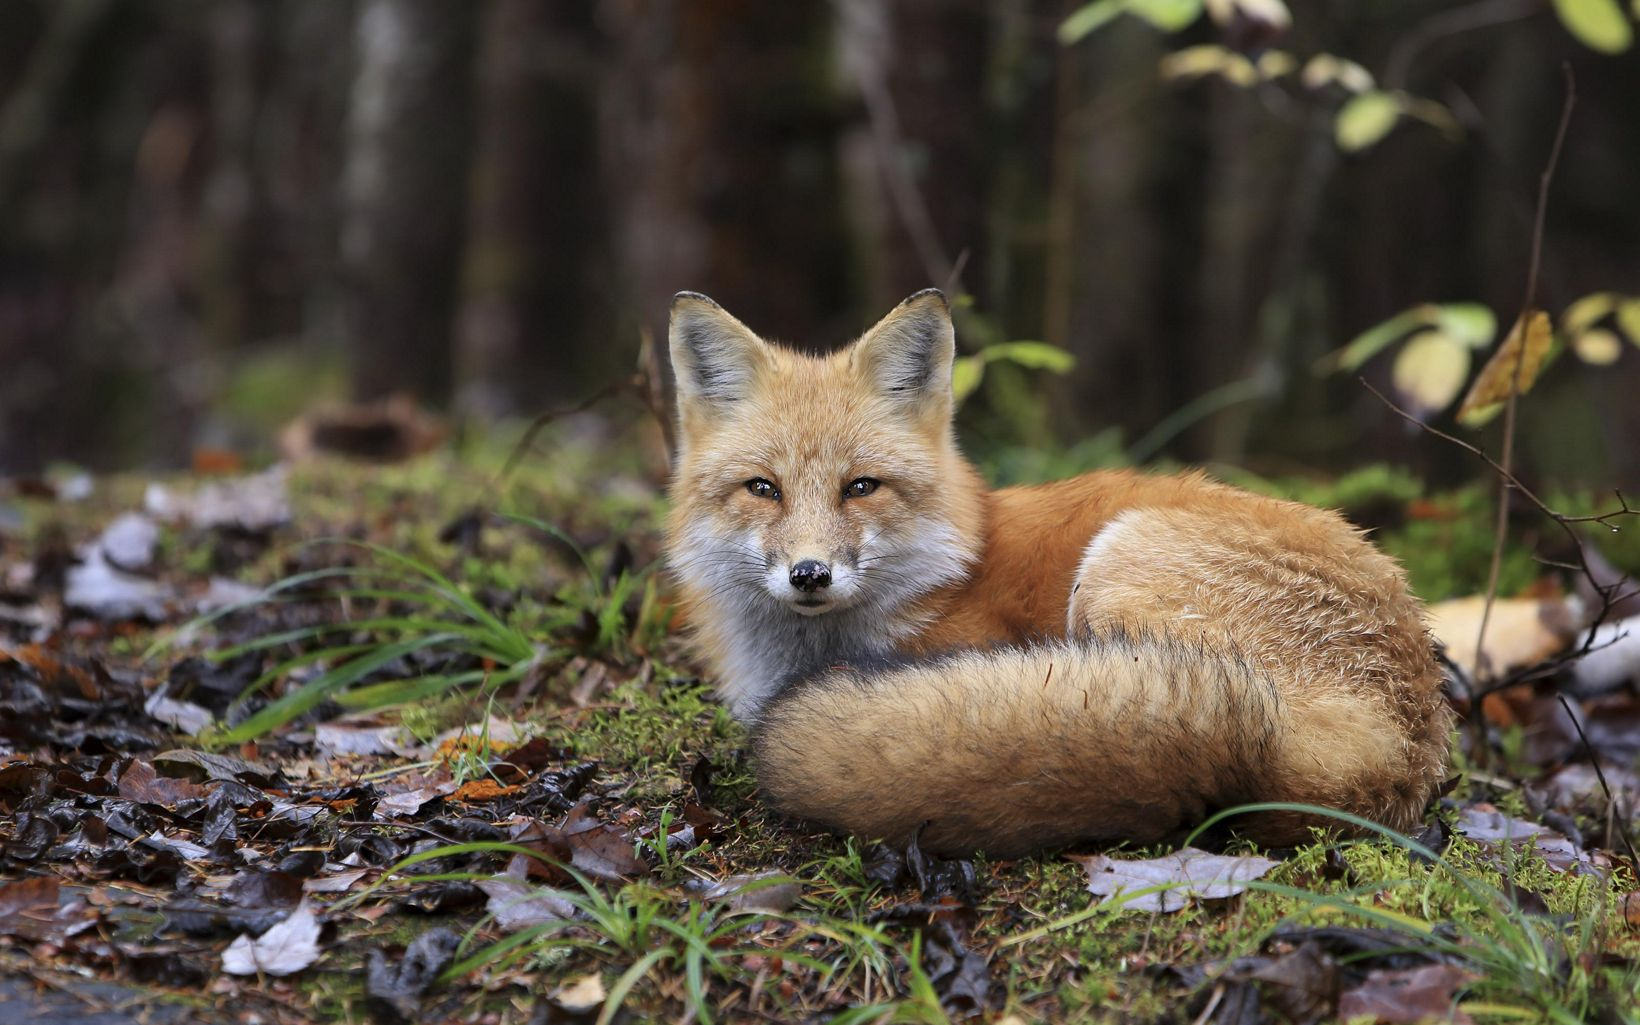 A red fox is sitting on the ground.